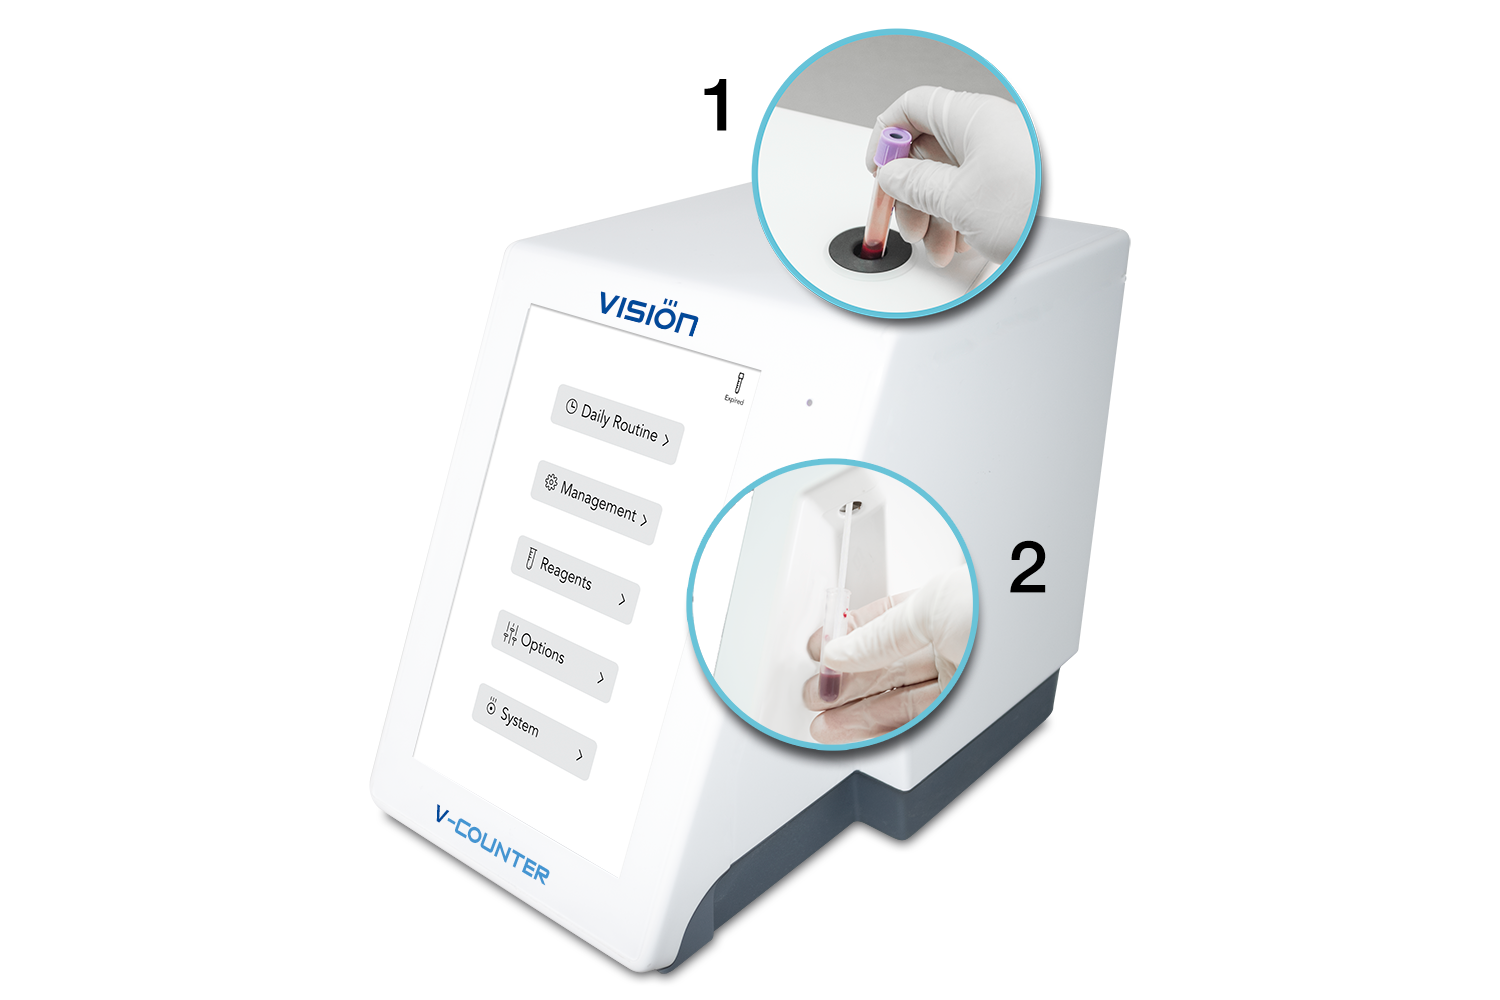 V-Counter operates with any type of closed and open EDTA test-tubes